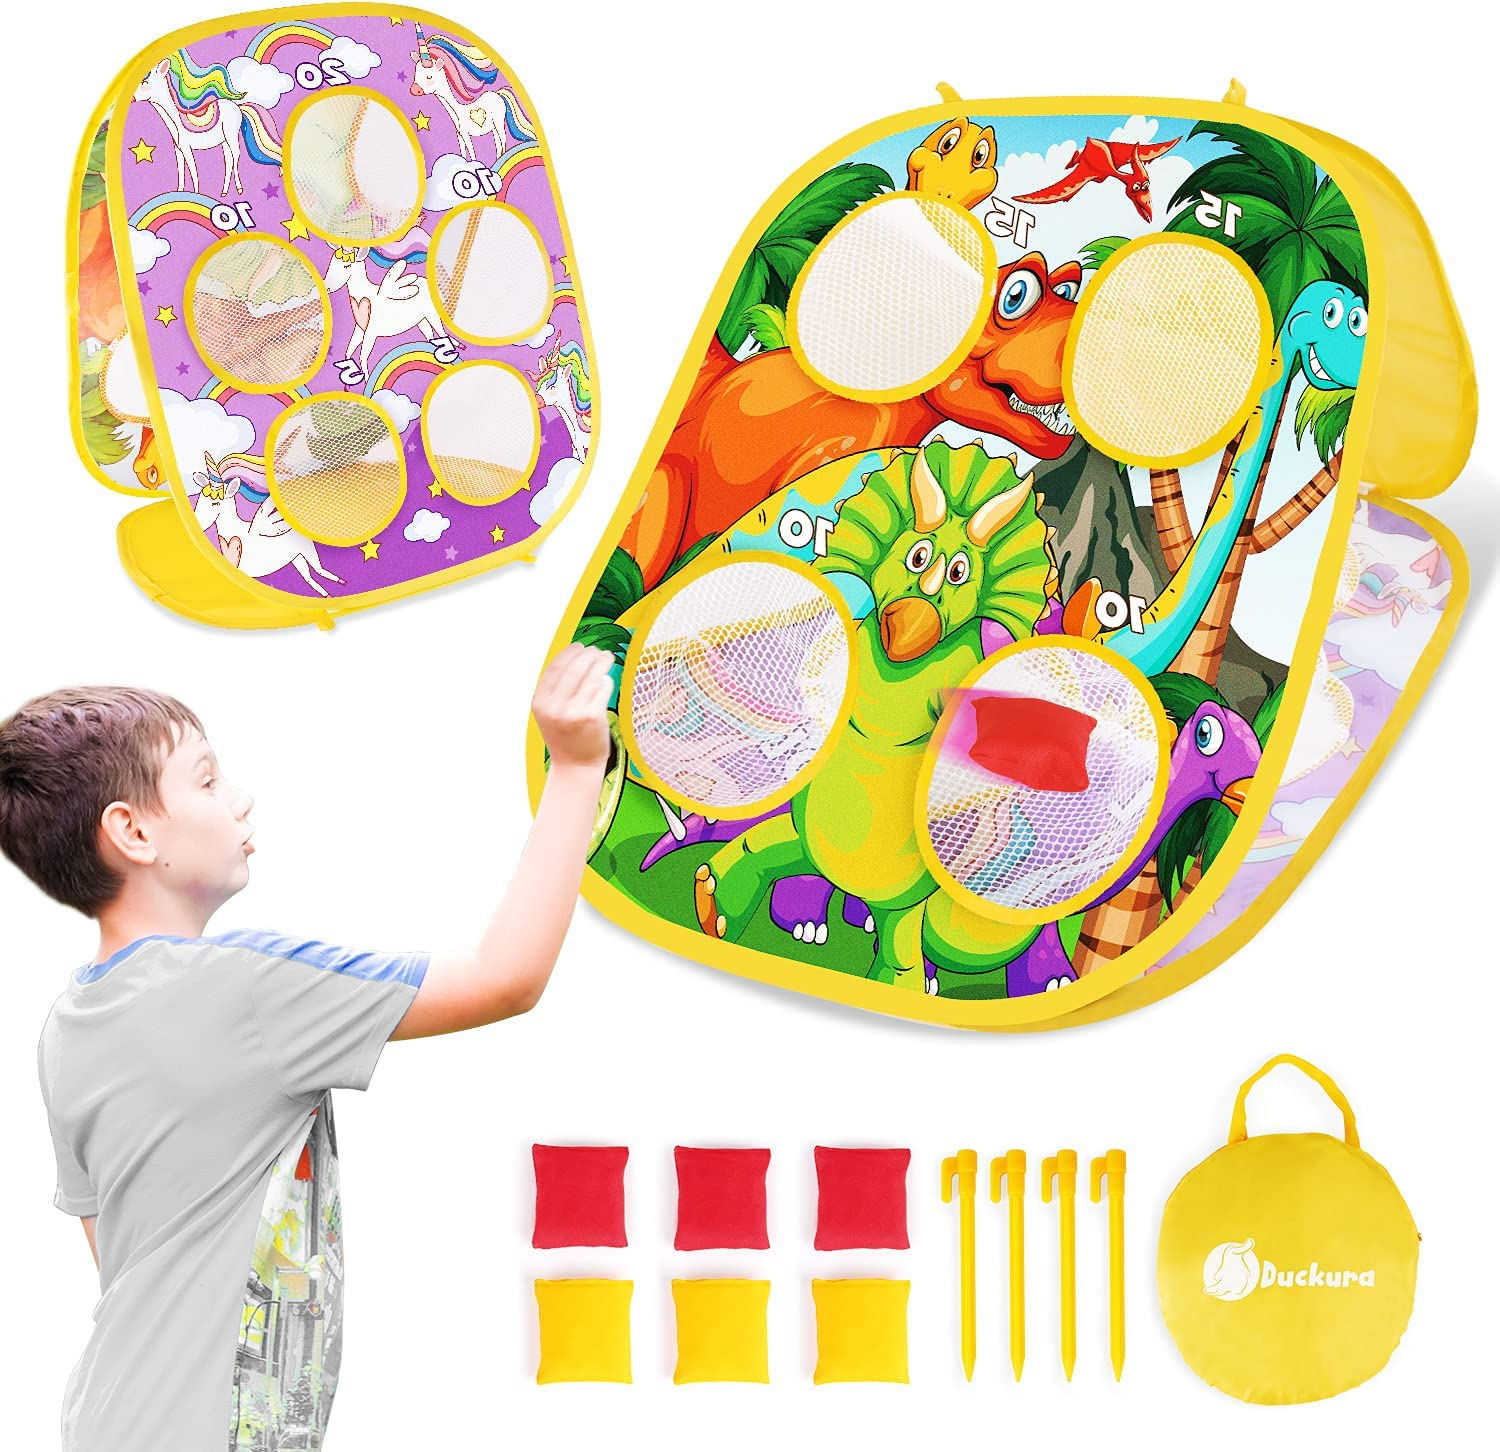 Duckura Bean Bag Toss Game Special sale item for Todd Kids low-pricing Beach Outdoor Toys